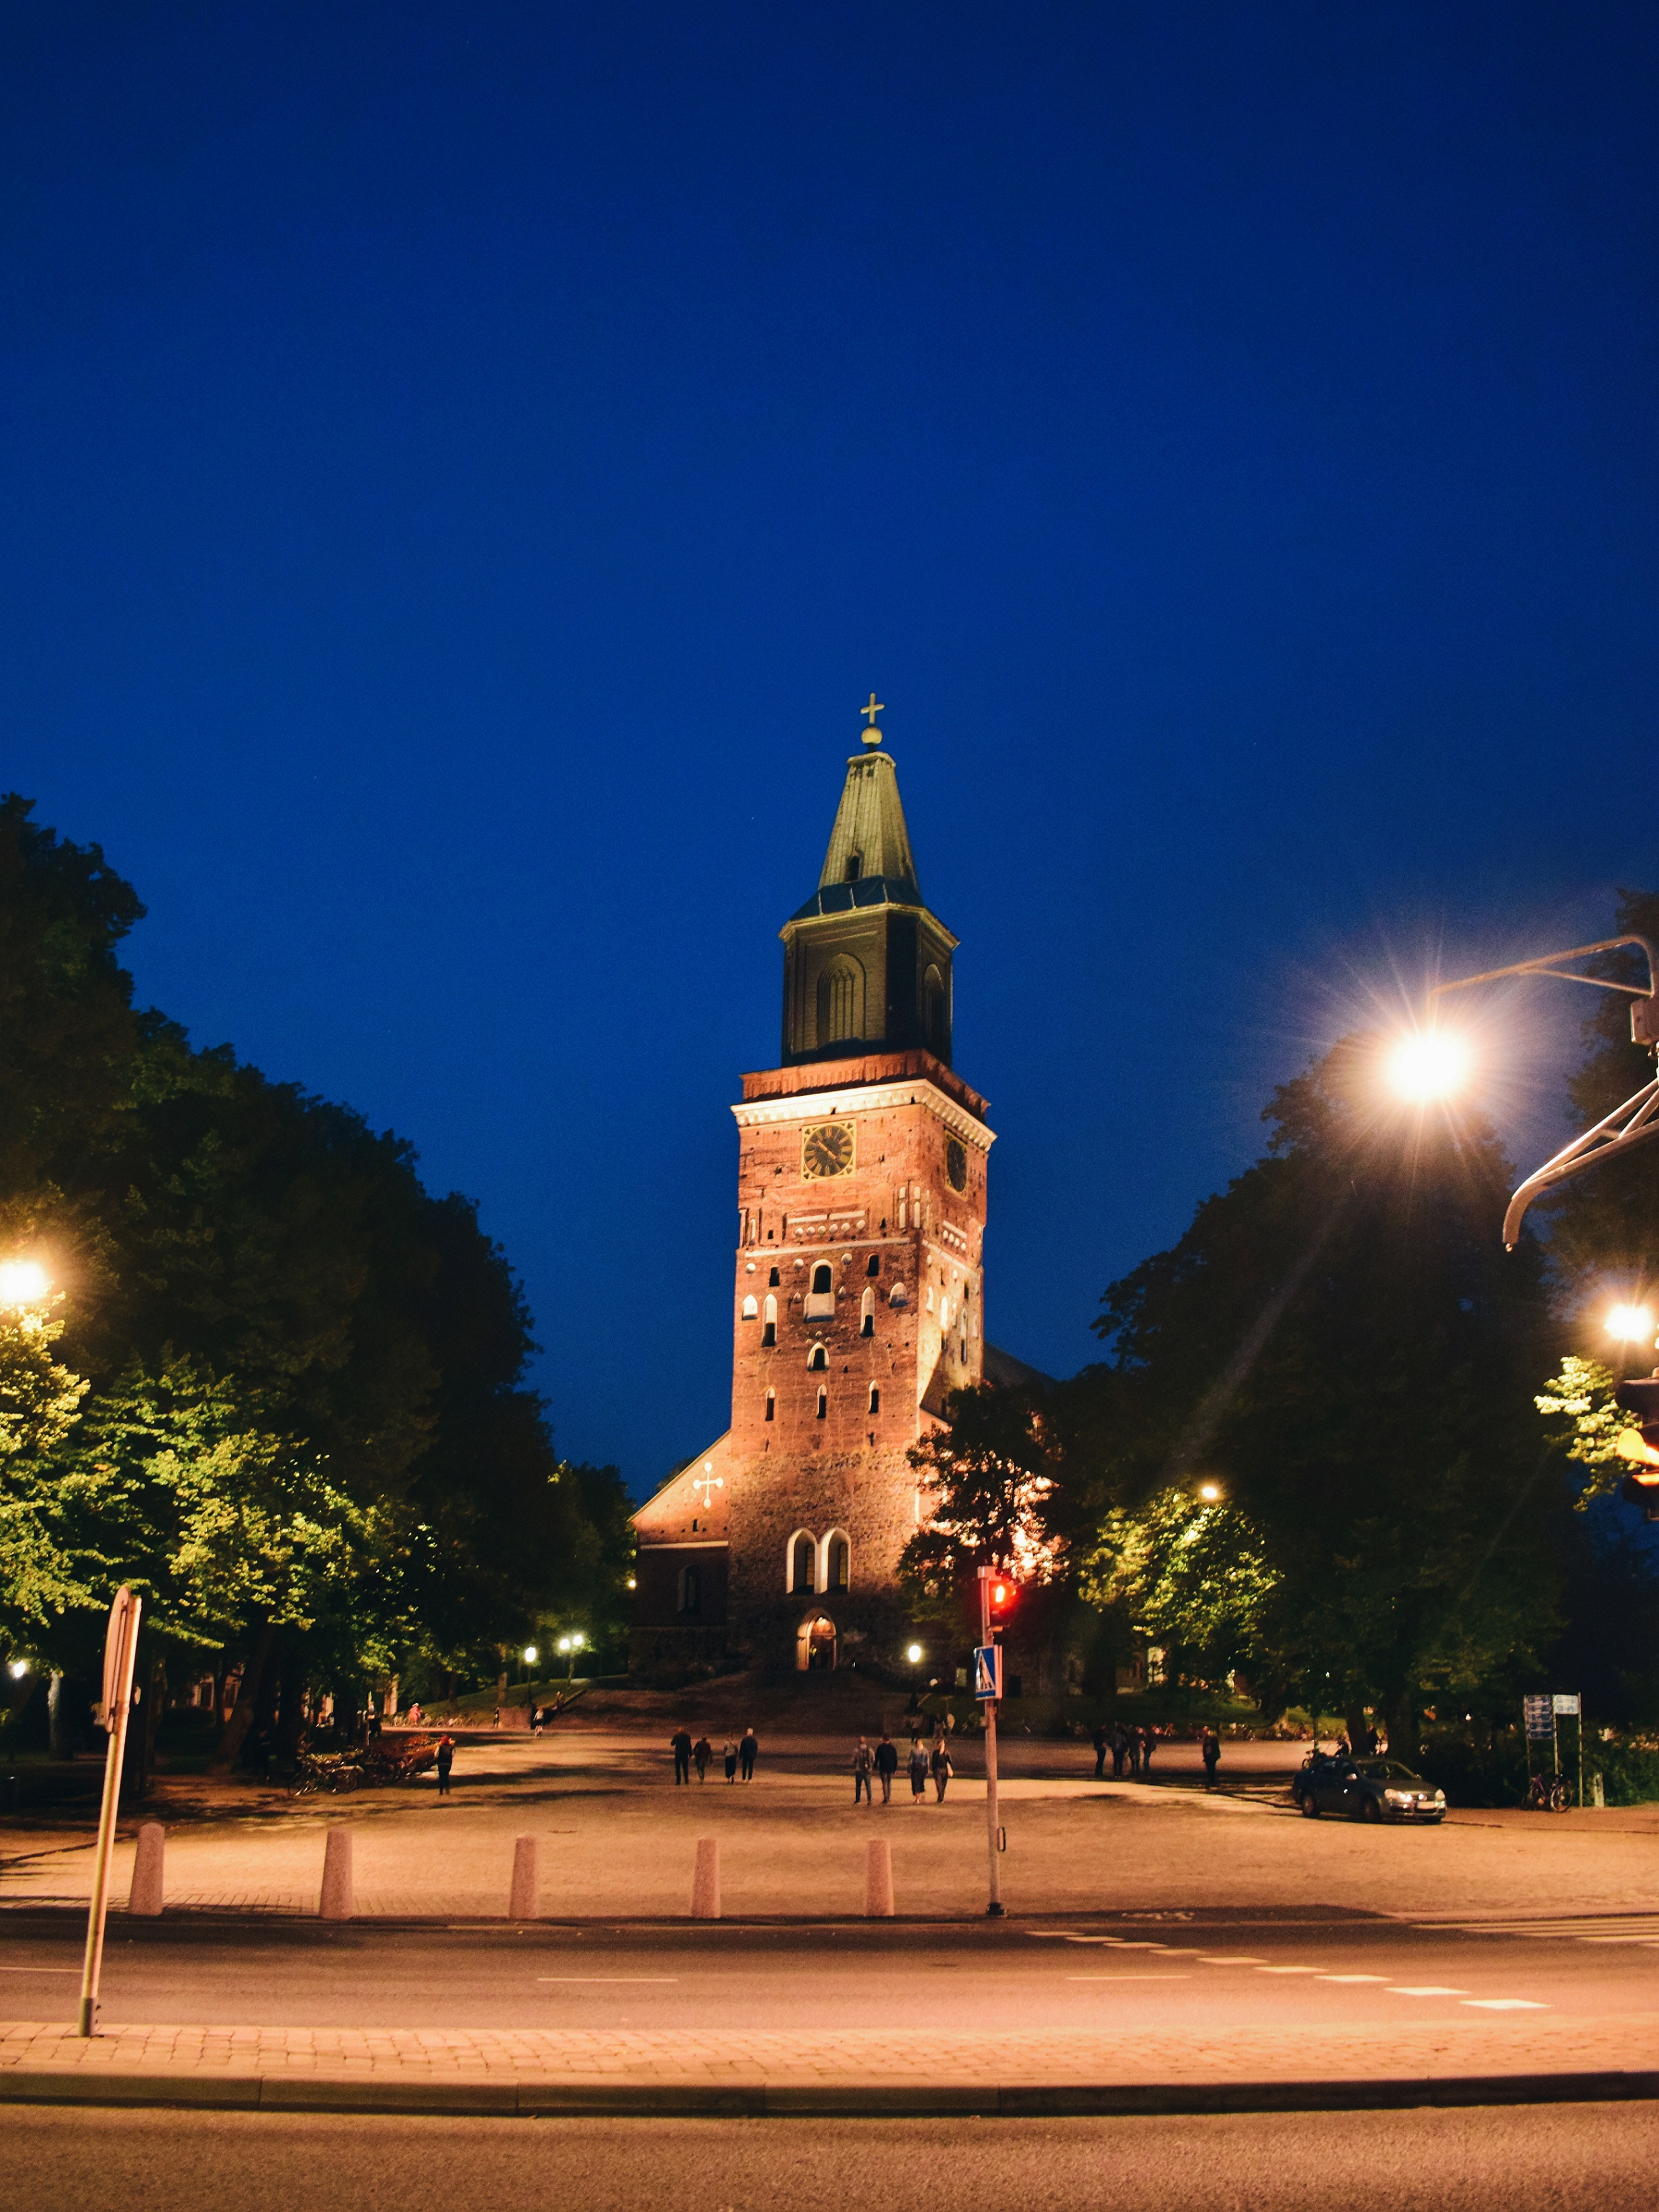 Outlandish blog love letter Turku Finland #kissmyturku tourist travel recommended